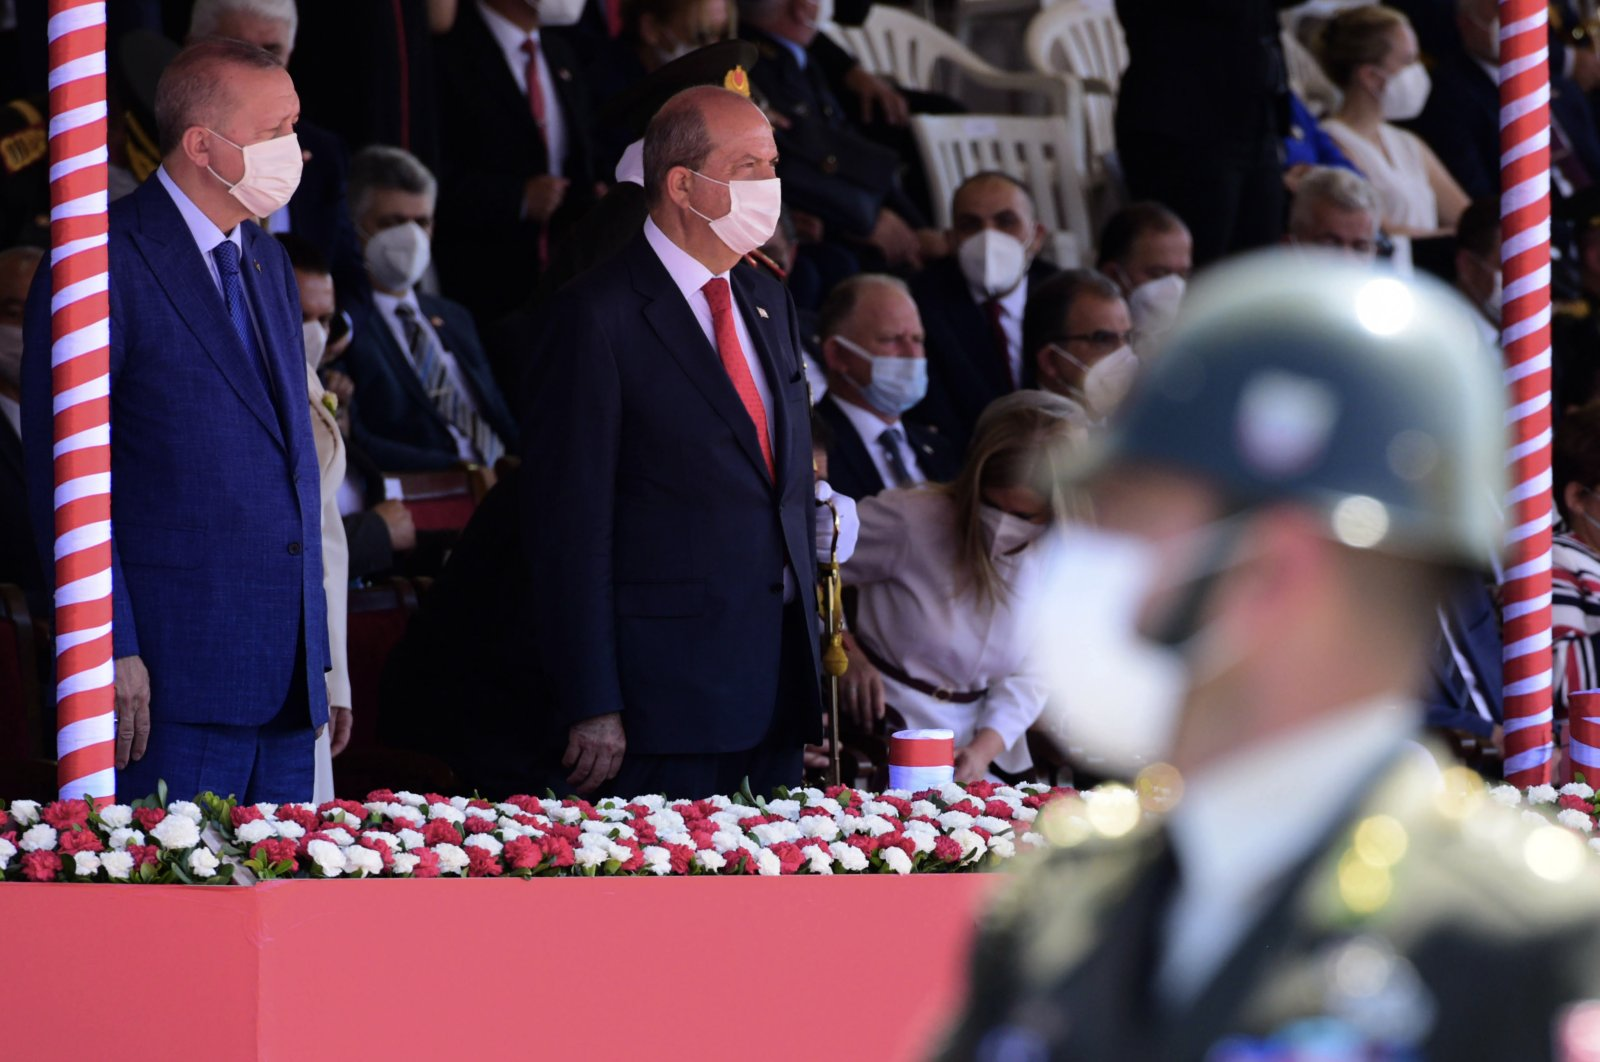 President Recep Tayyip Erdoğan,(back left), and Turkish Cypriot leader Ersin Tatar, (second left), attend the military parade marking the 47th anniversary of the 1974 operation in the divided capital Nicosia (Lefkoşa), Cyprus, Tuesday, July 20, 2021. (AP Photo)